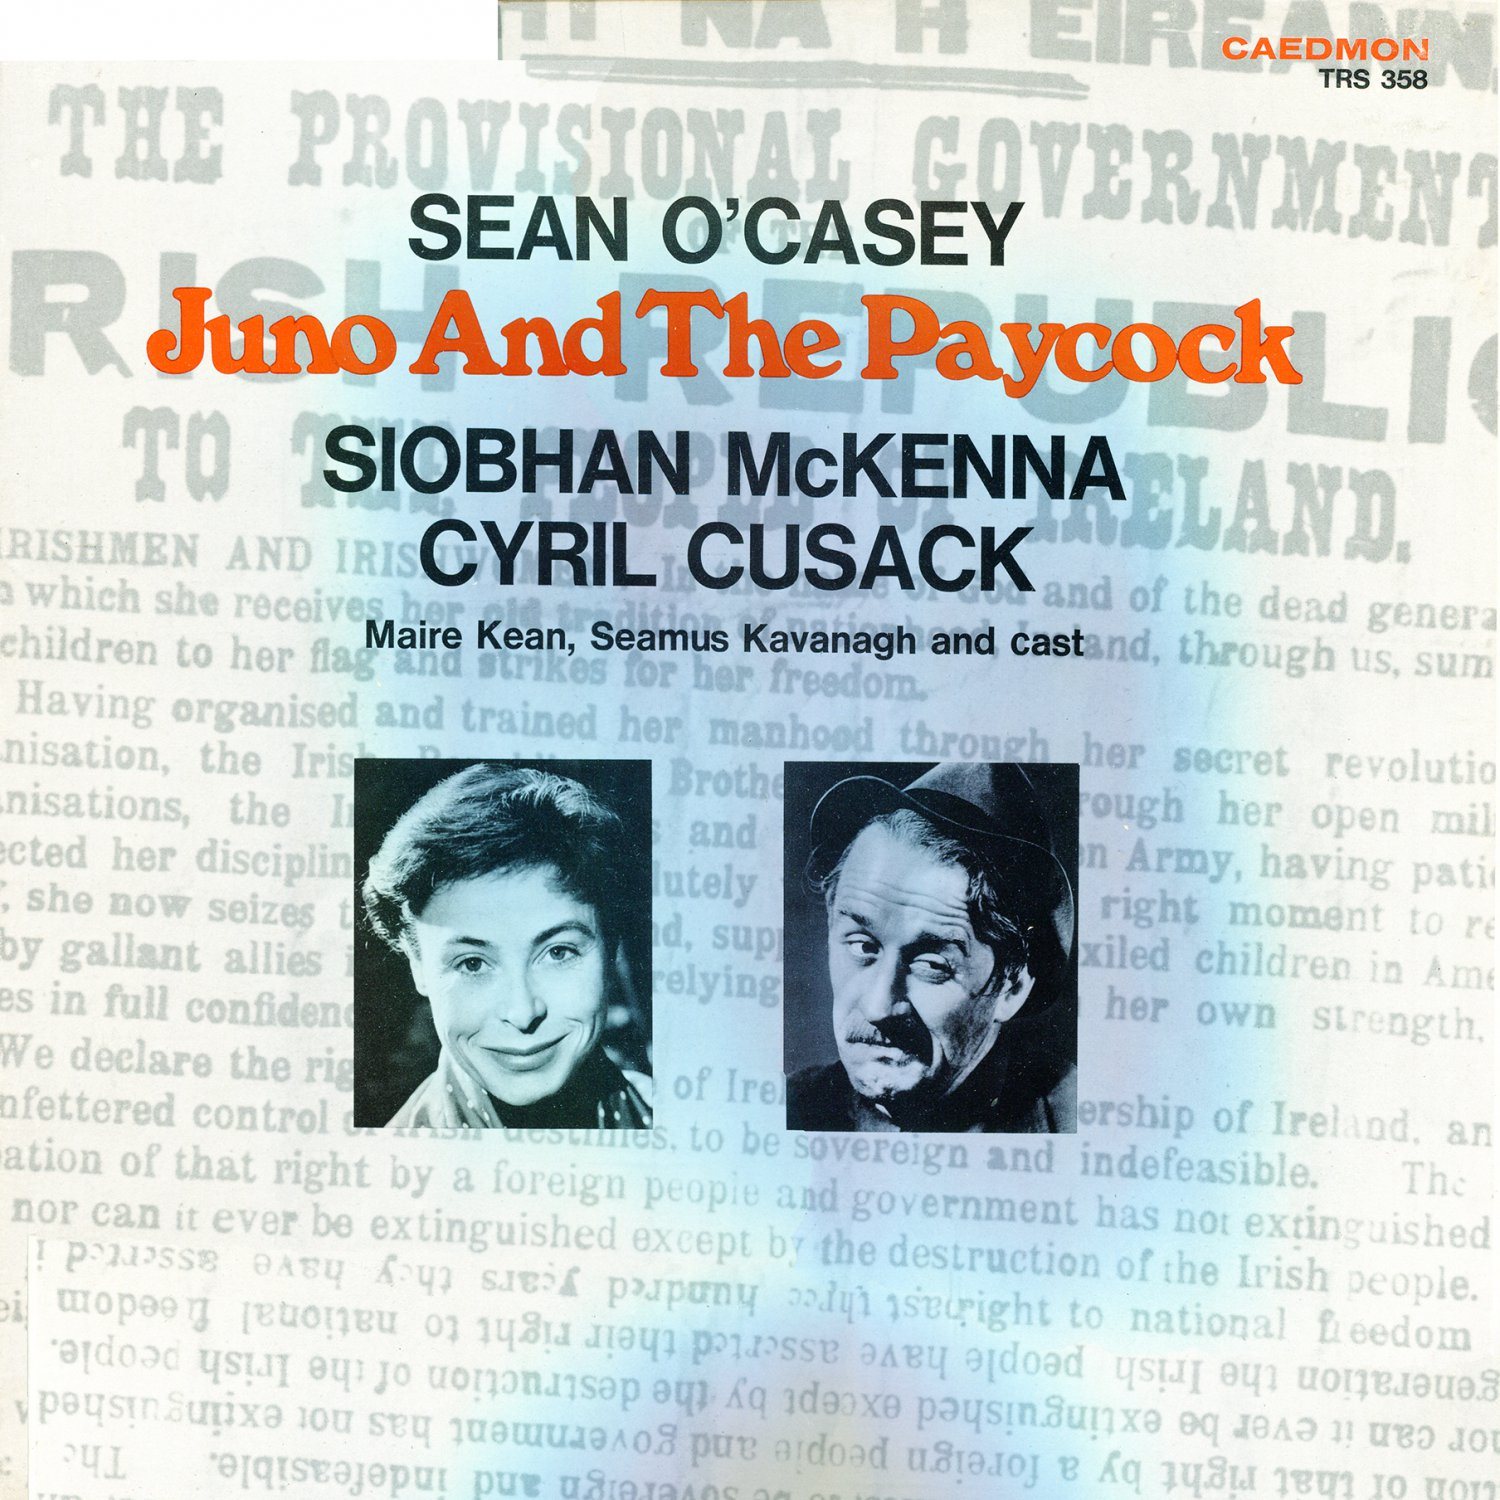 Juno And The Paycock - Original Cast Soundtrack, Sean O'Casey LP/CD